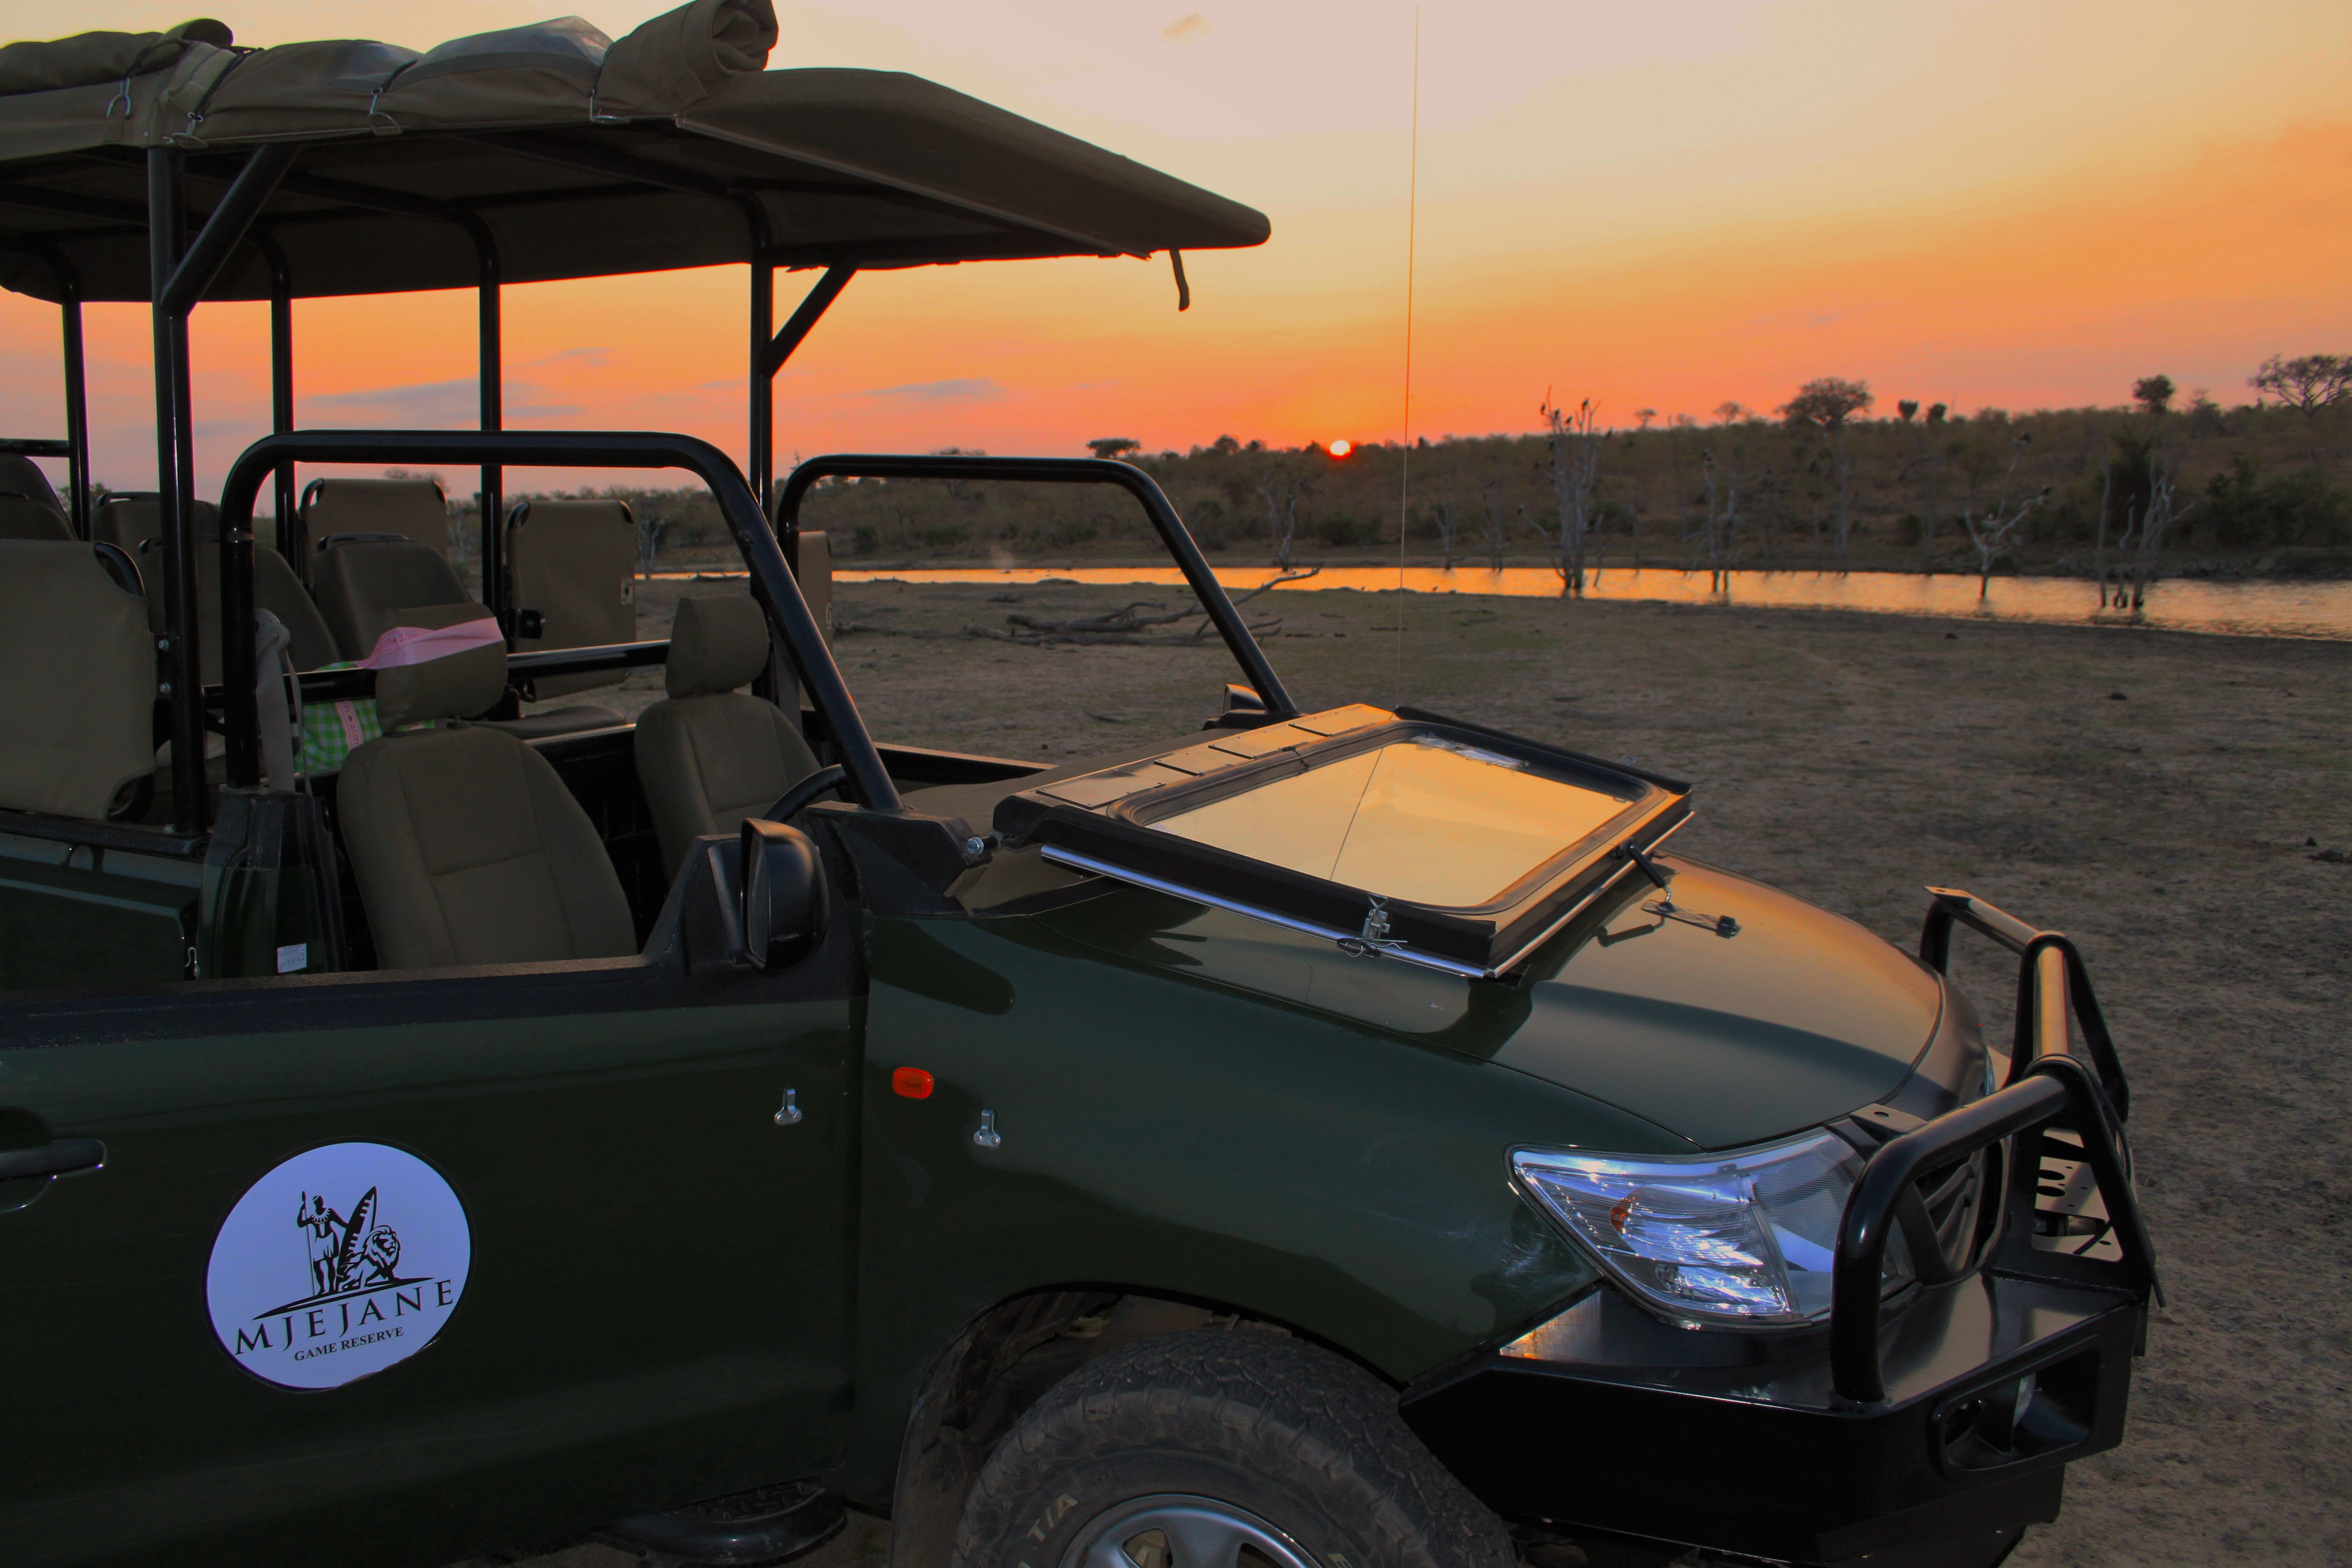 Mjejane Game Reserve - Open Vehicle